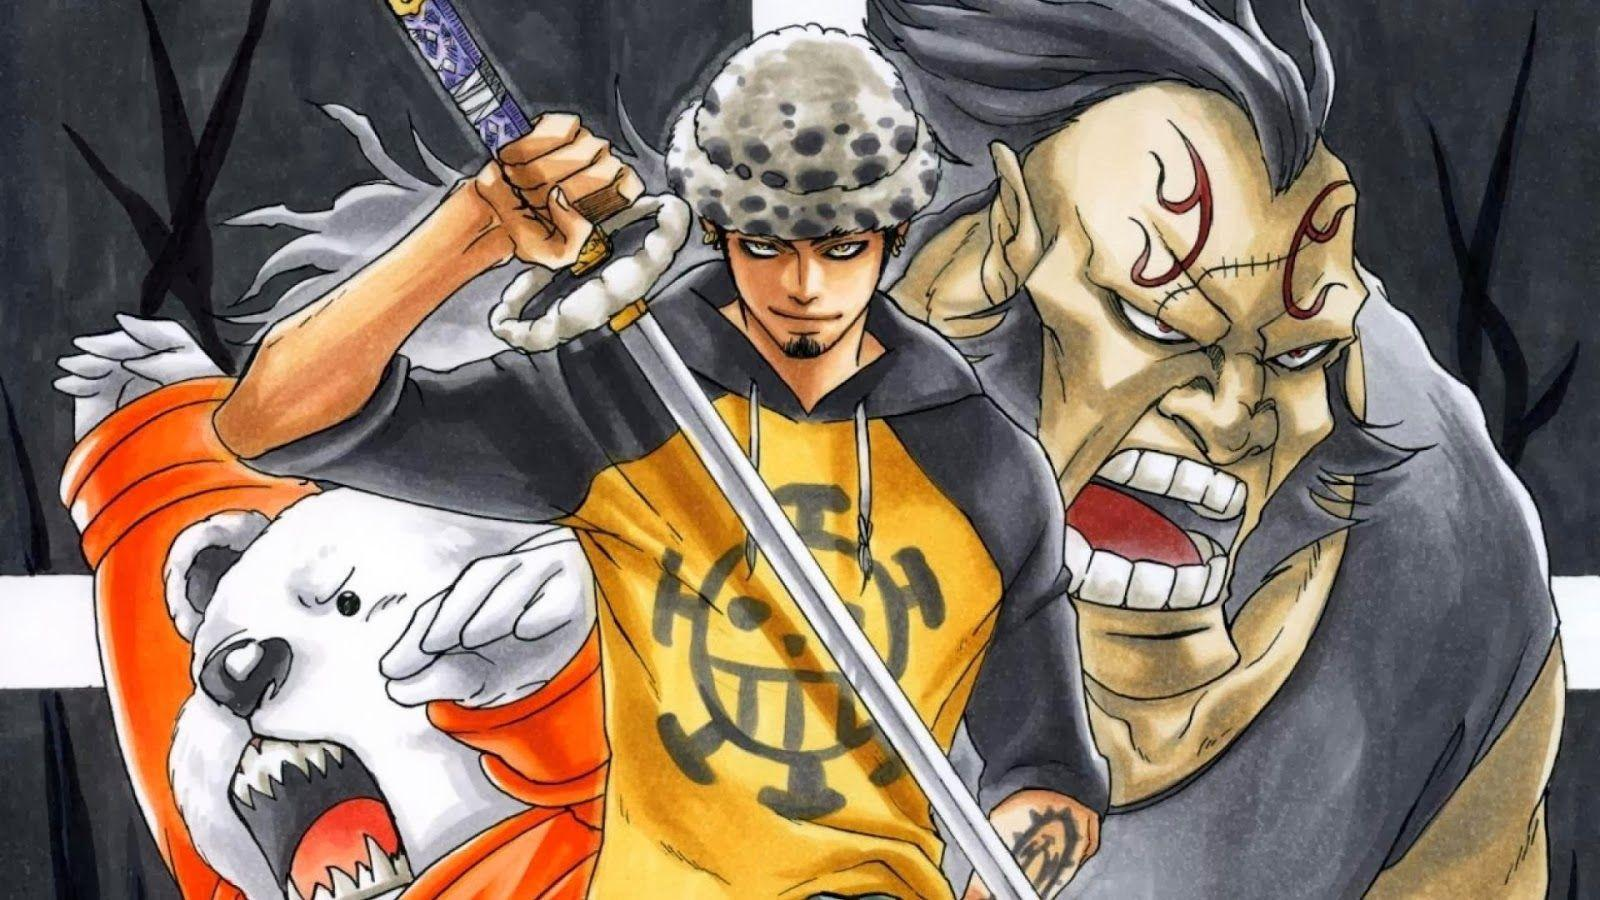 One Piece Trafalgar Law Wallpaper - Art Design Ideaz